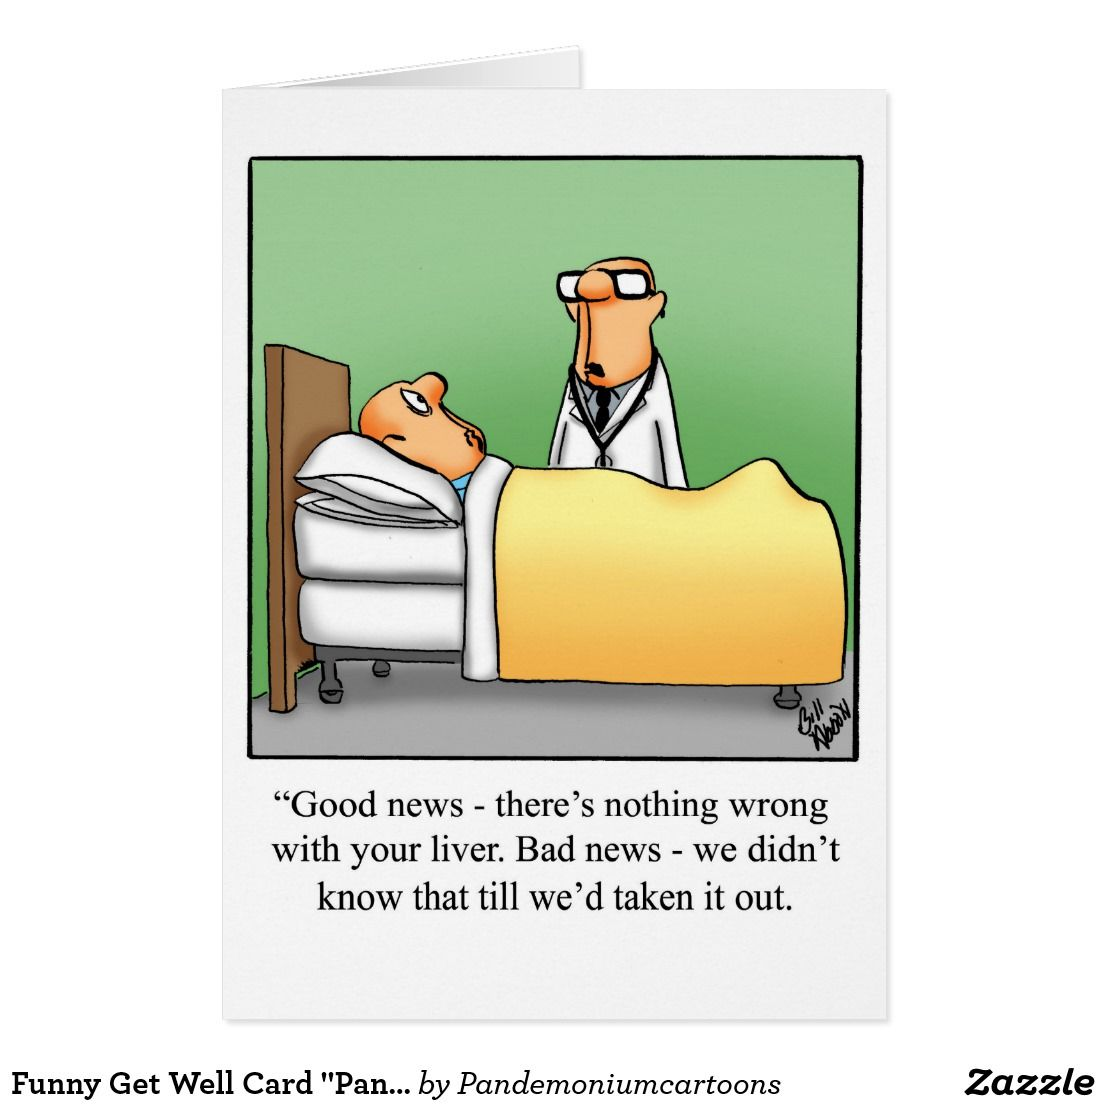 Funny Get Well Card Pandemonium Style Zazzle Com In 2021 Funny Get Well Cards Funny Greeting Cards Get Well Cards